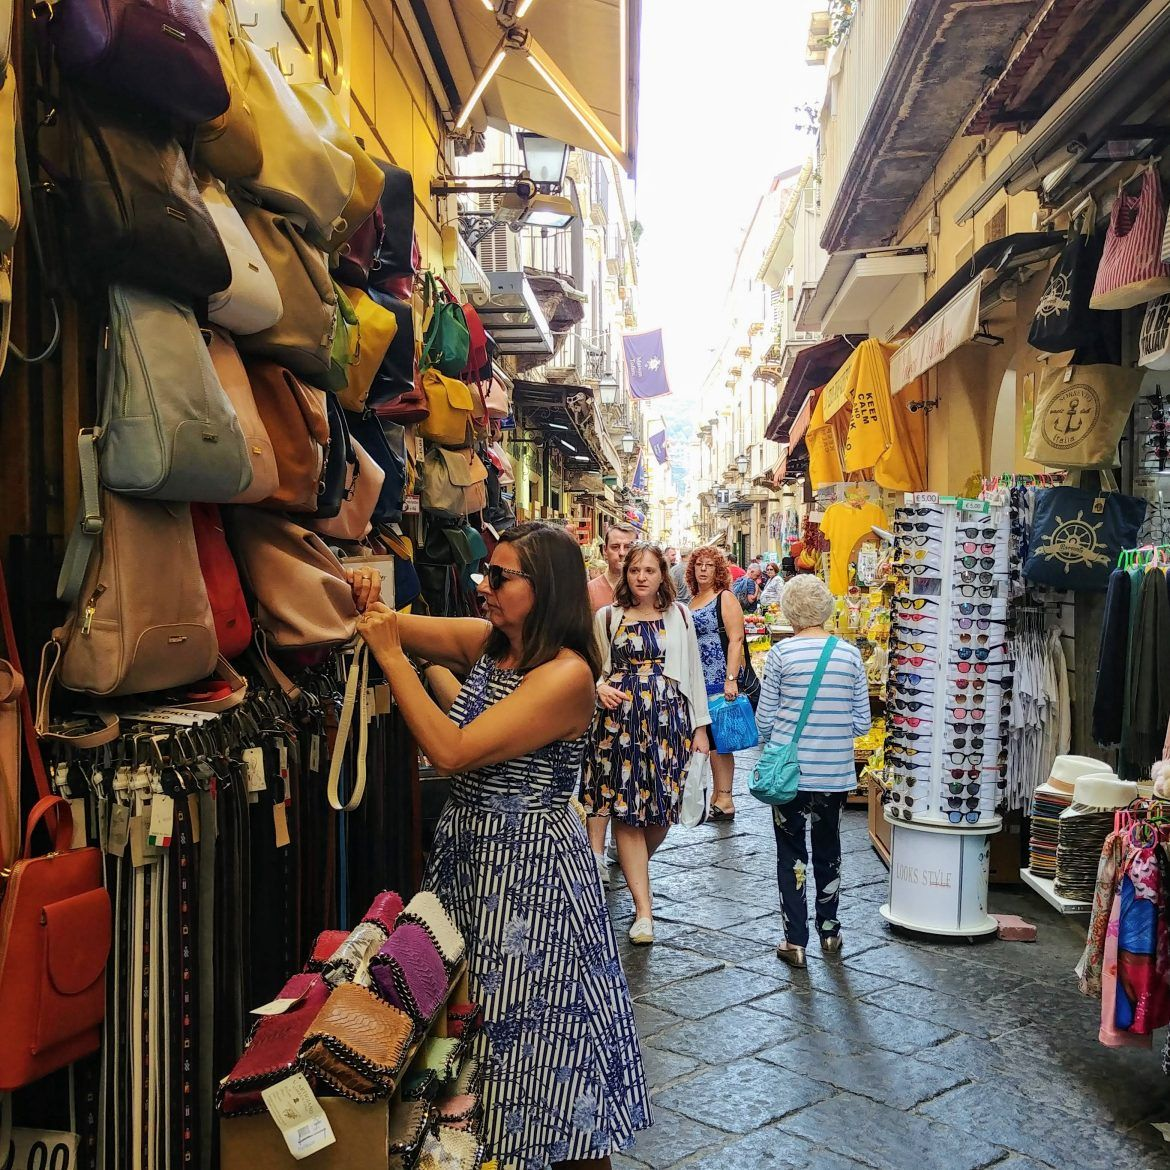 Bring Home The Best Italy Souvenirs Souvenirs From Italy Naples Italy Italy